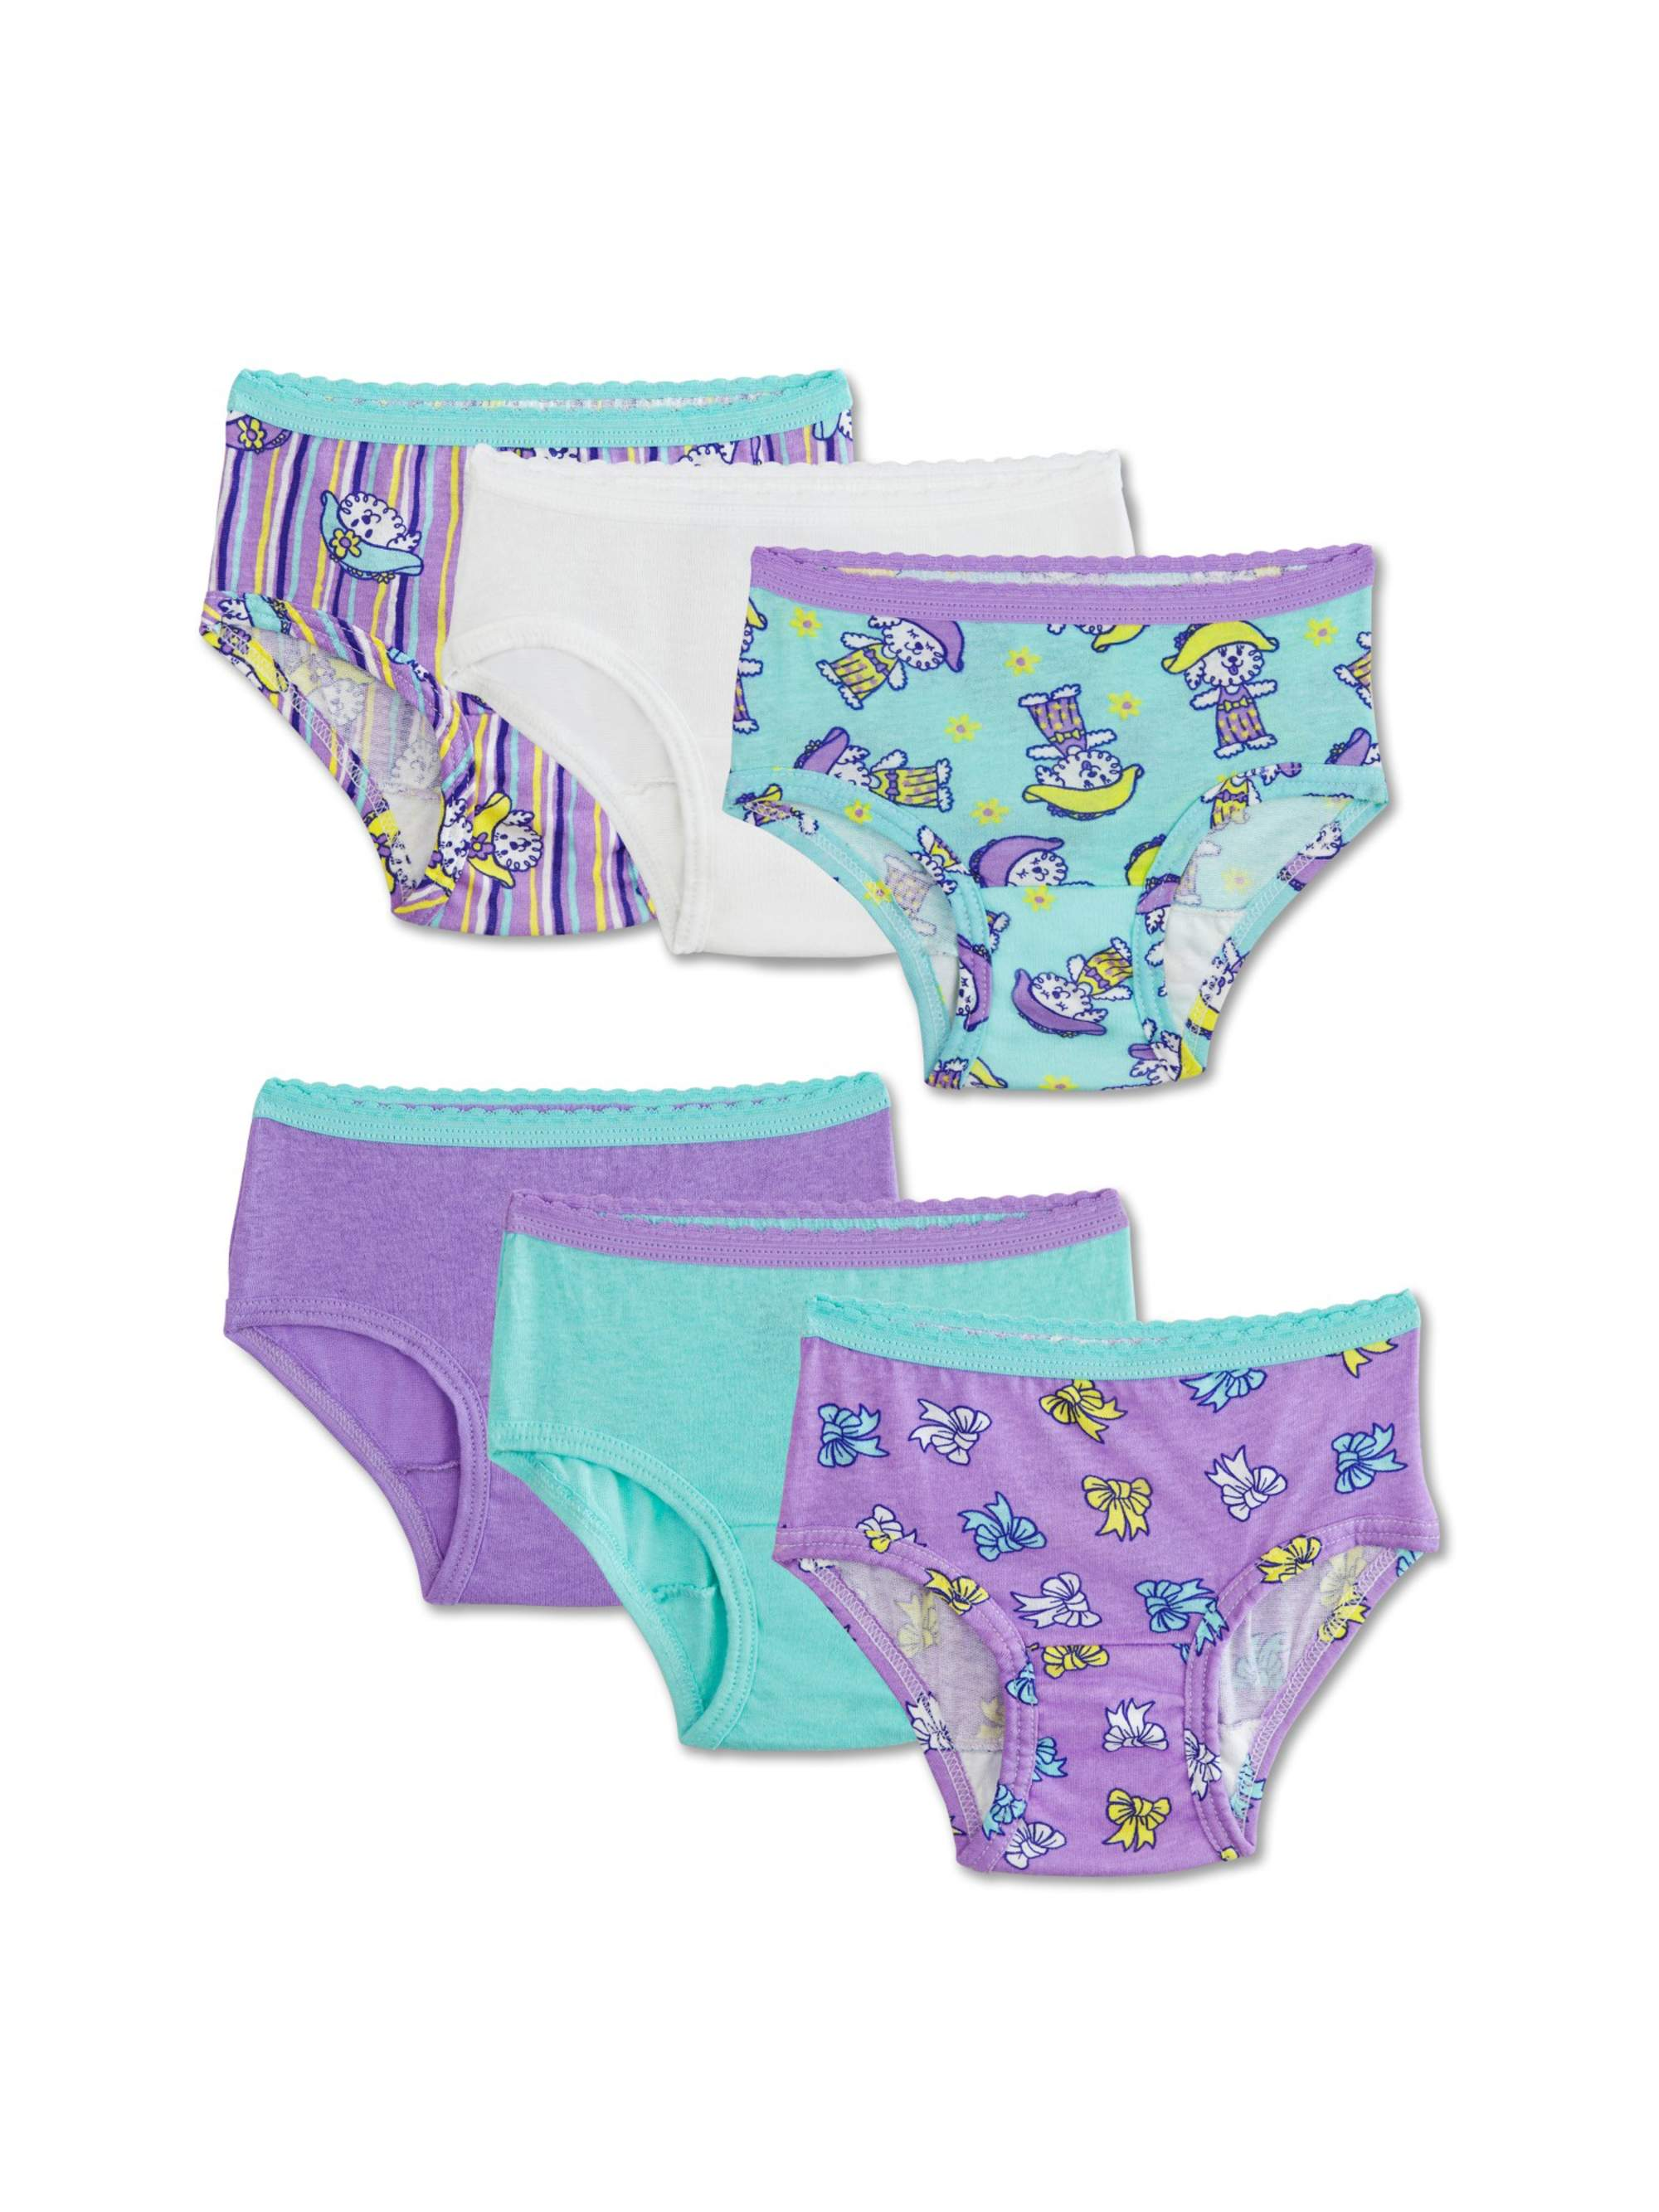 Fruit of the Loom Assorted Cotton Briefs, 6 Pack (Toddler Girl)